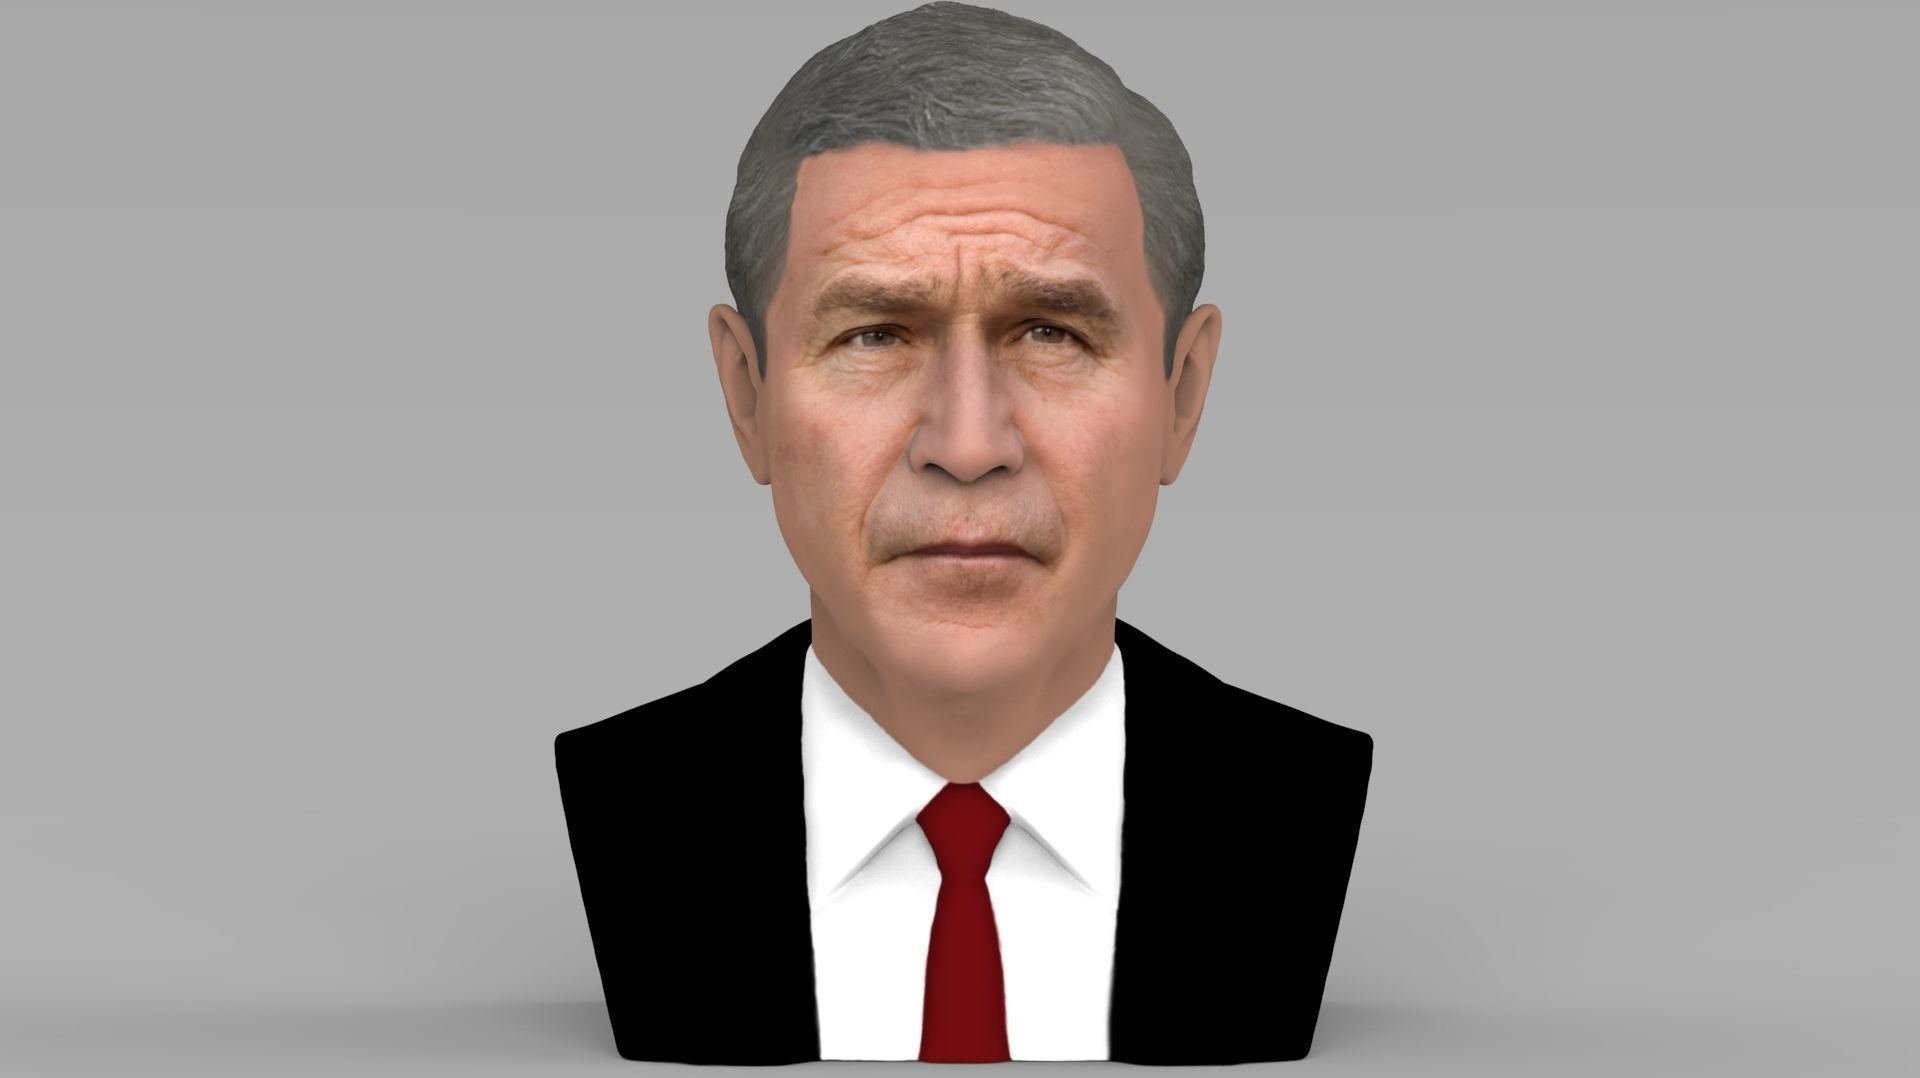 President George W Bush bust ready for full color 3D printing